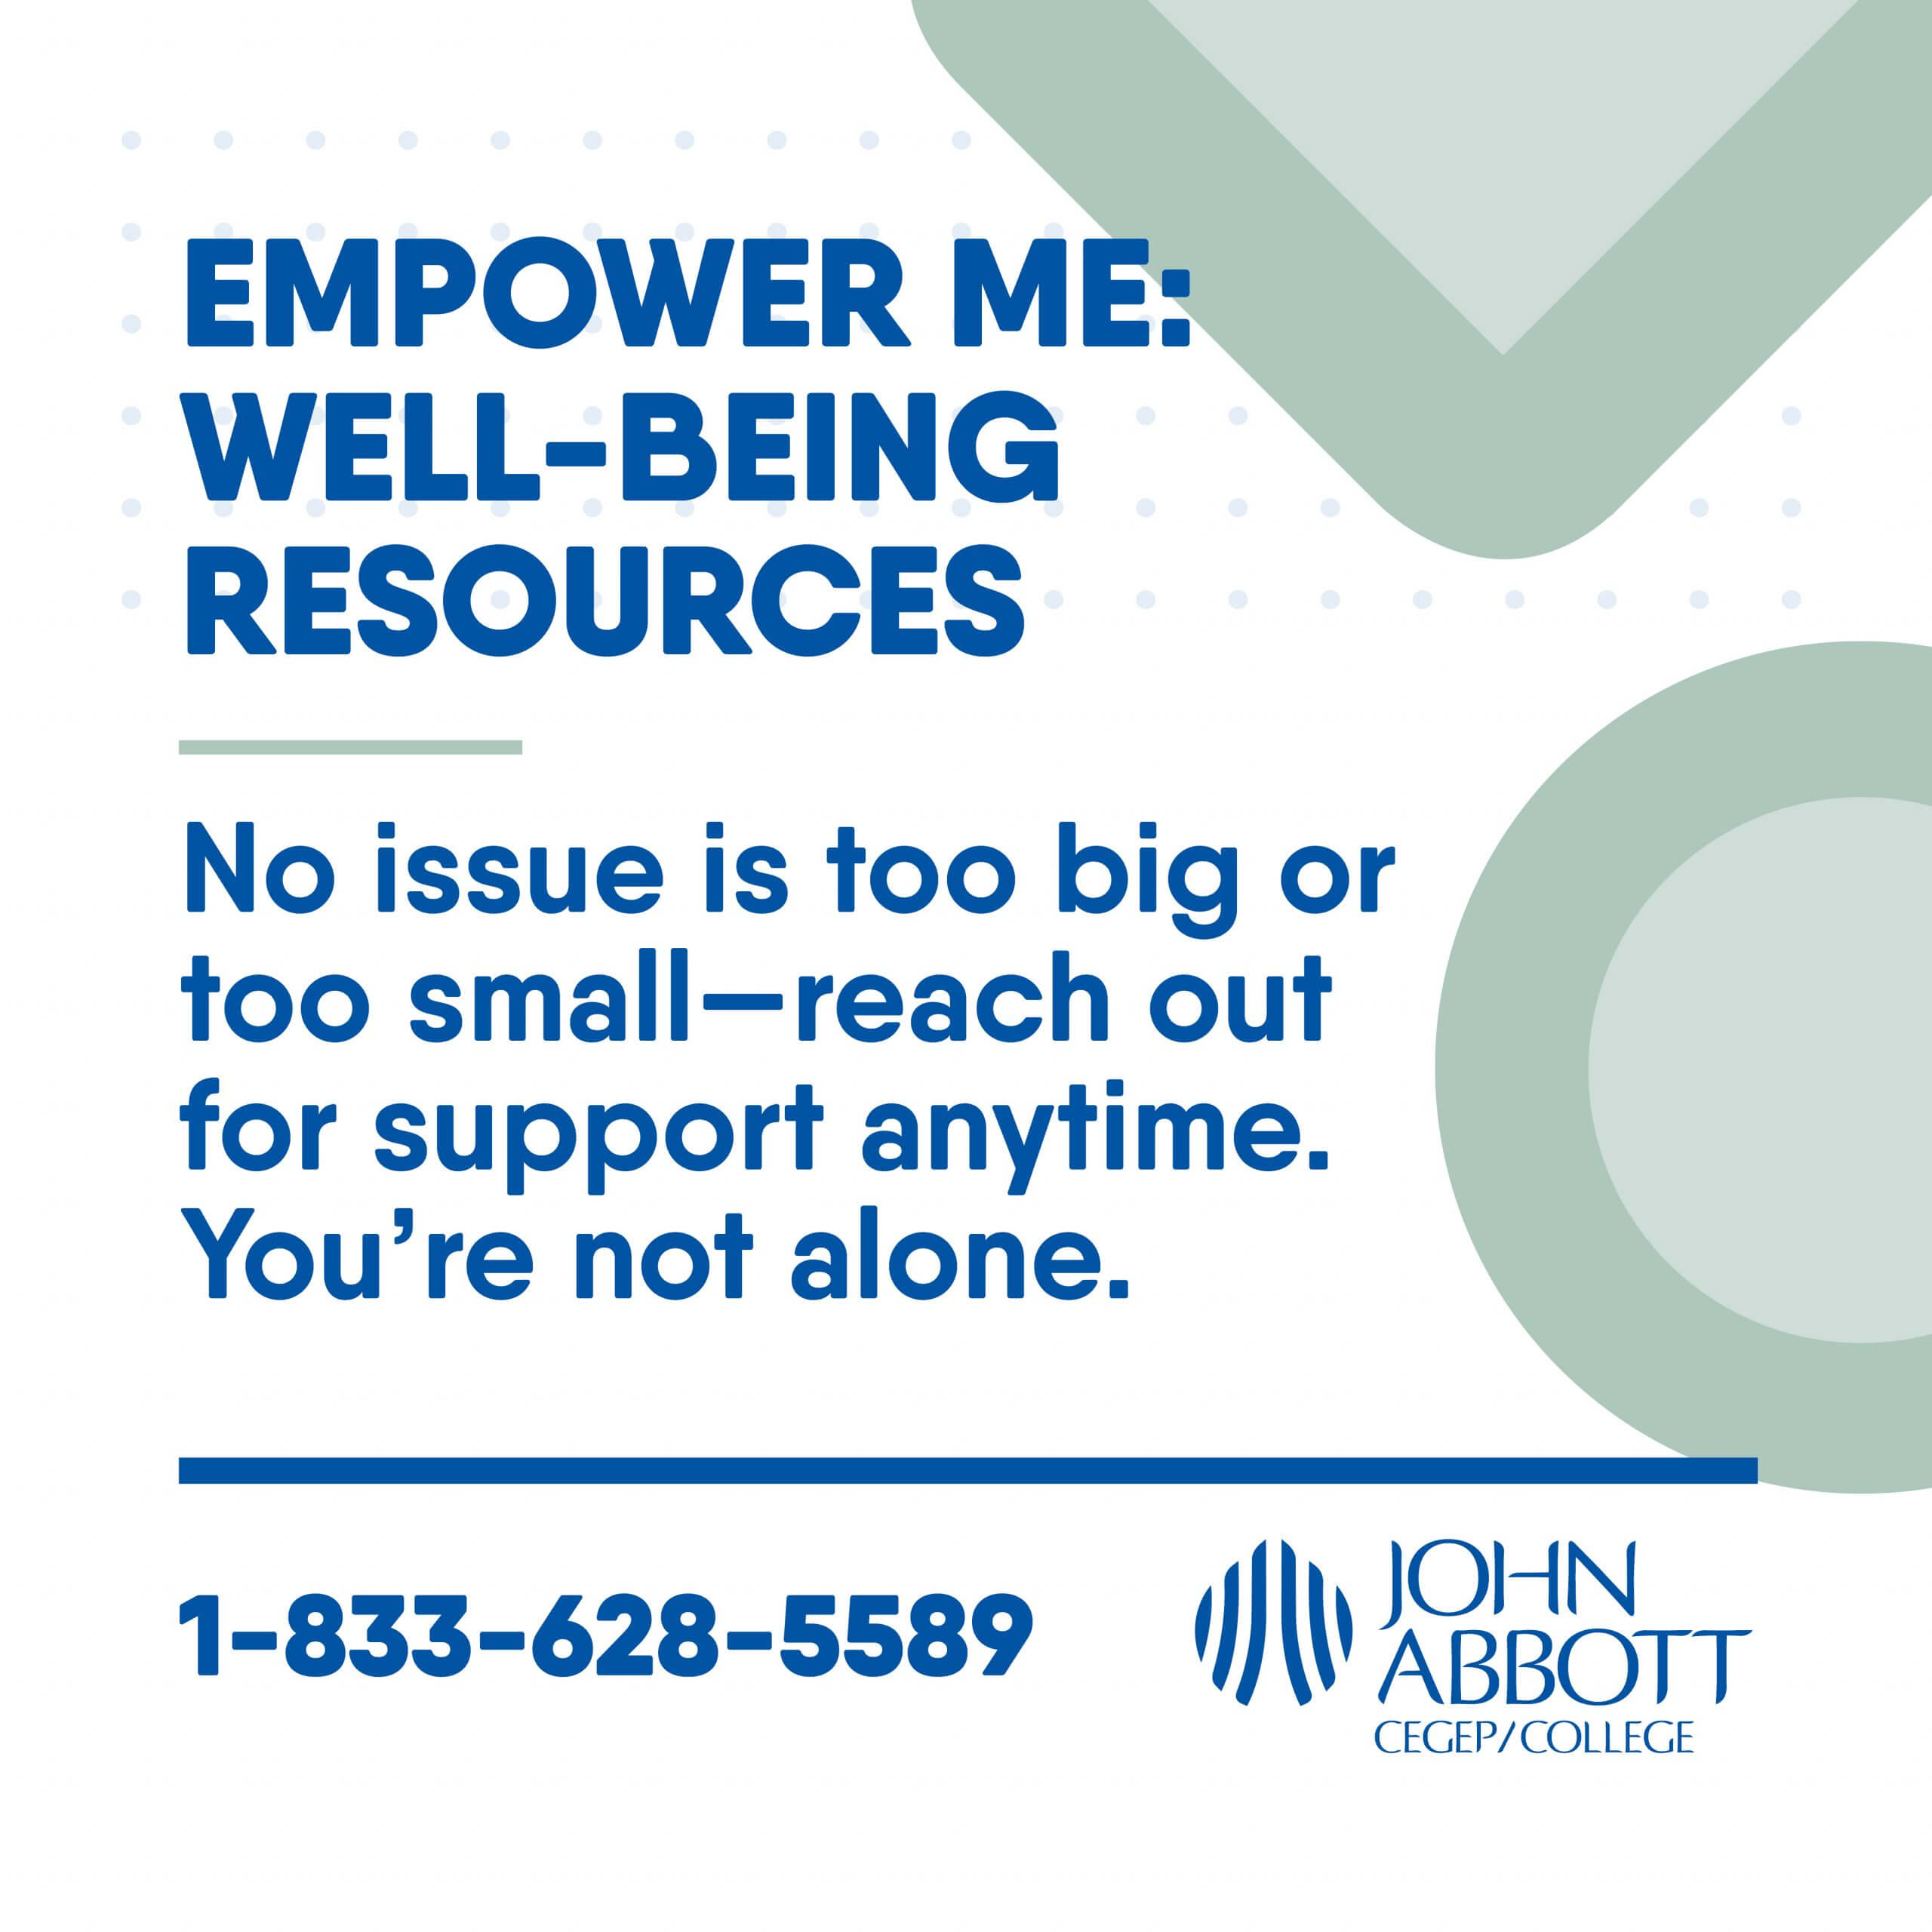 Empower me: Well-being resources. No issue too big or too small. Reach out for support anytime. You're not alone. 1-833-628-5589